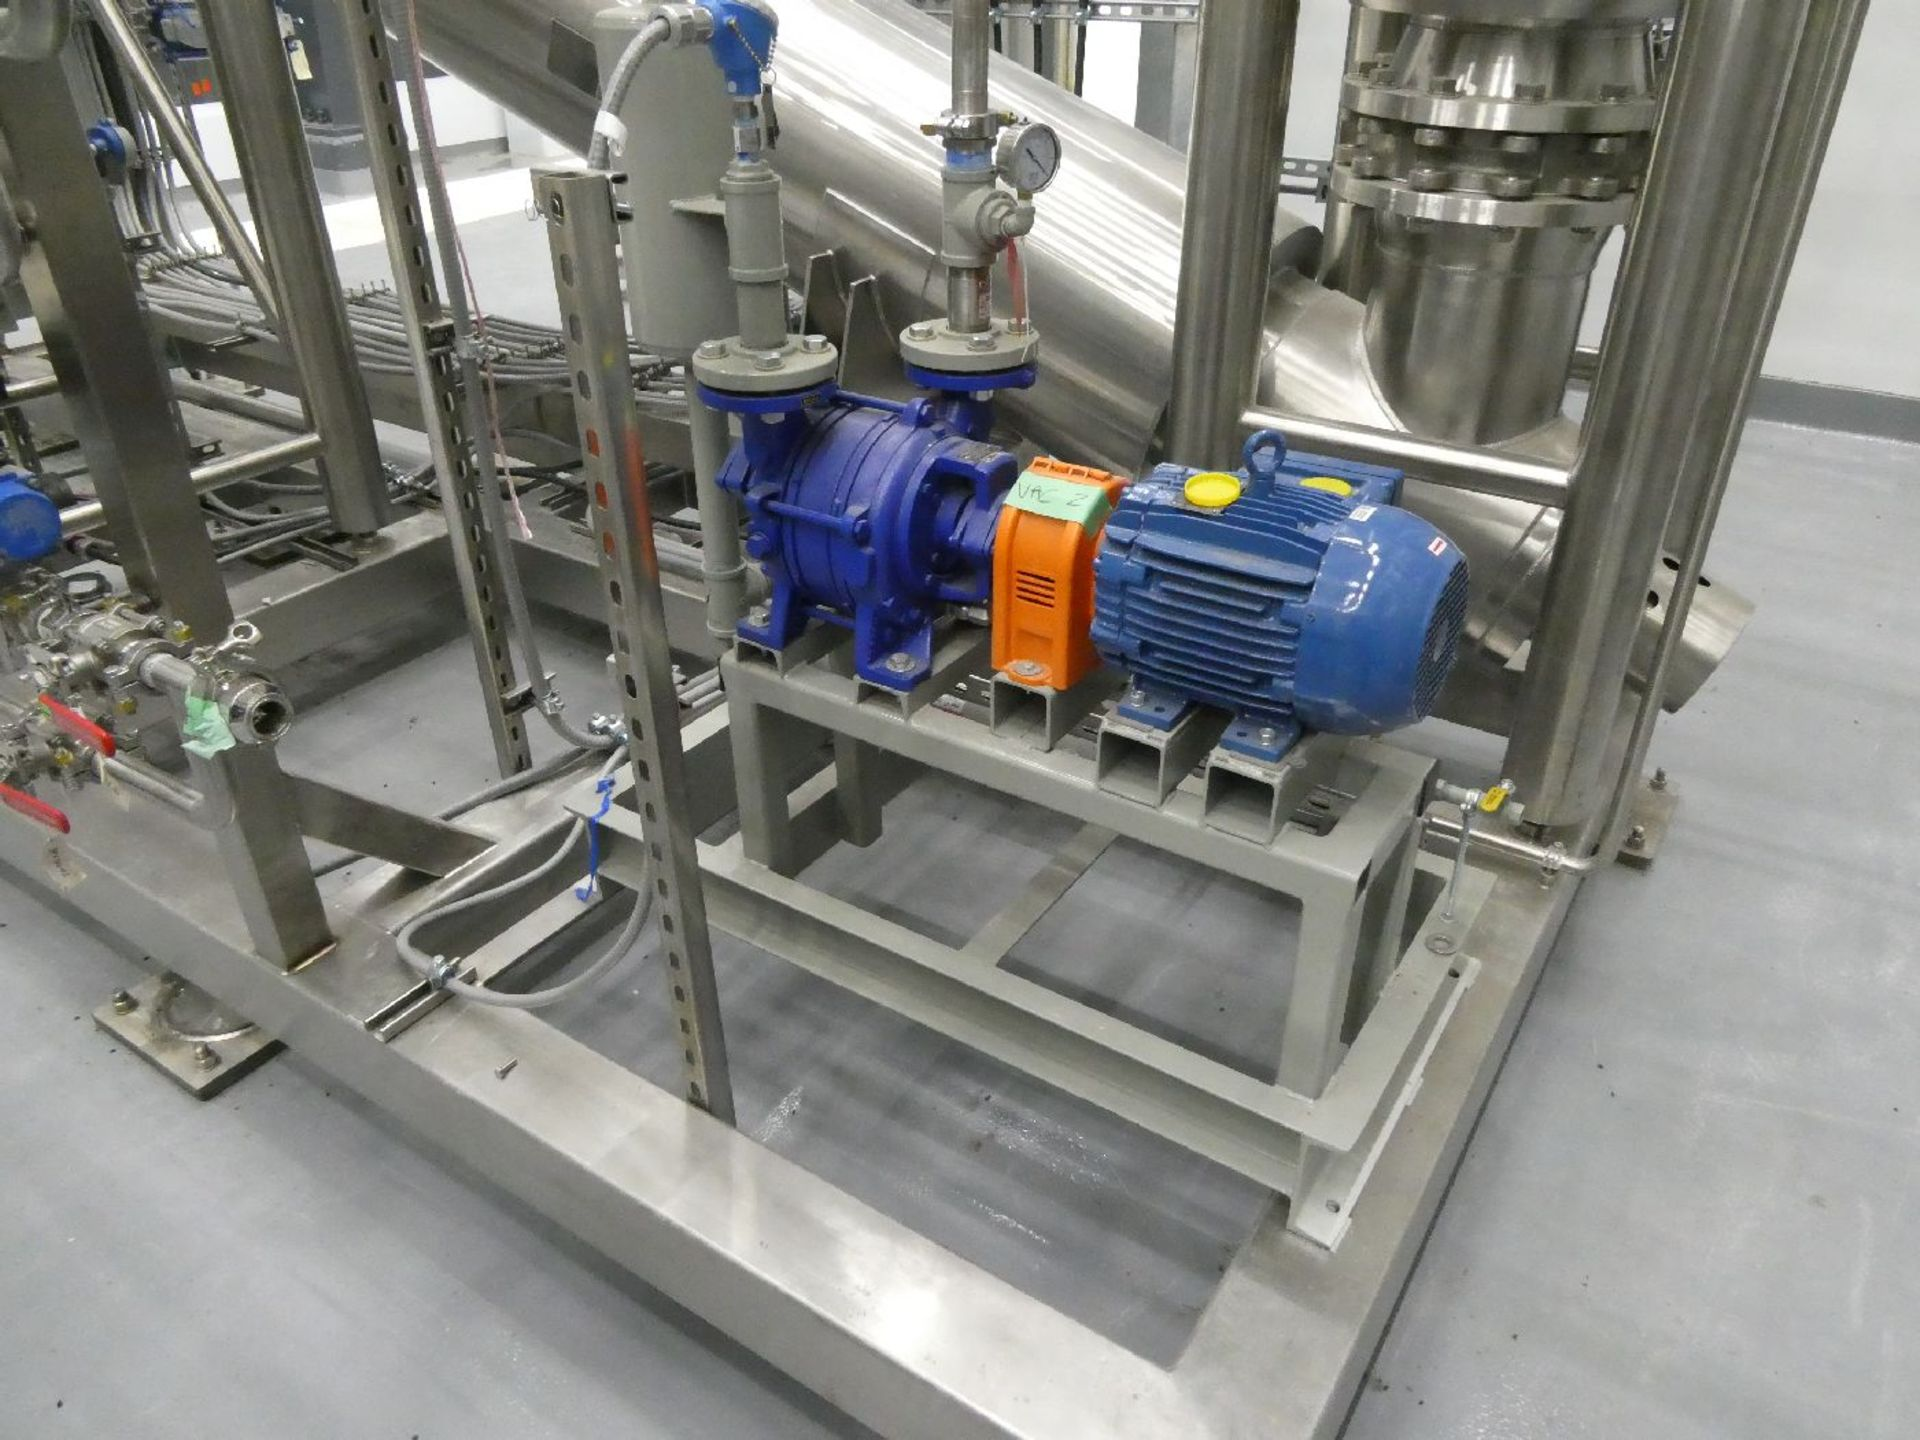 ROTAX Closed Loop Solvent Based Continuous Oil Extraction System - Image 7 of 68